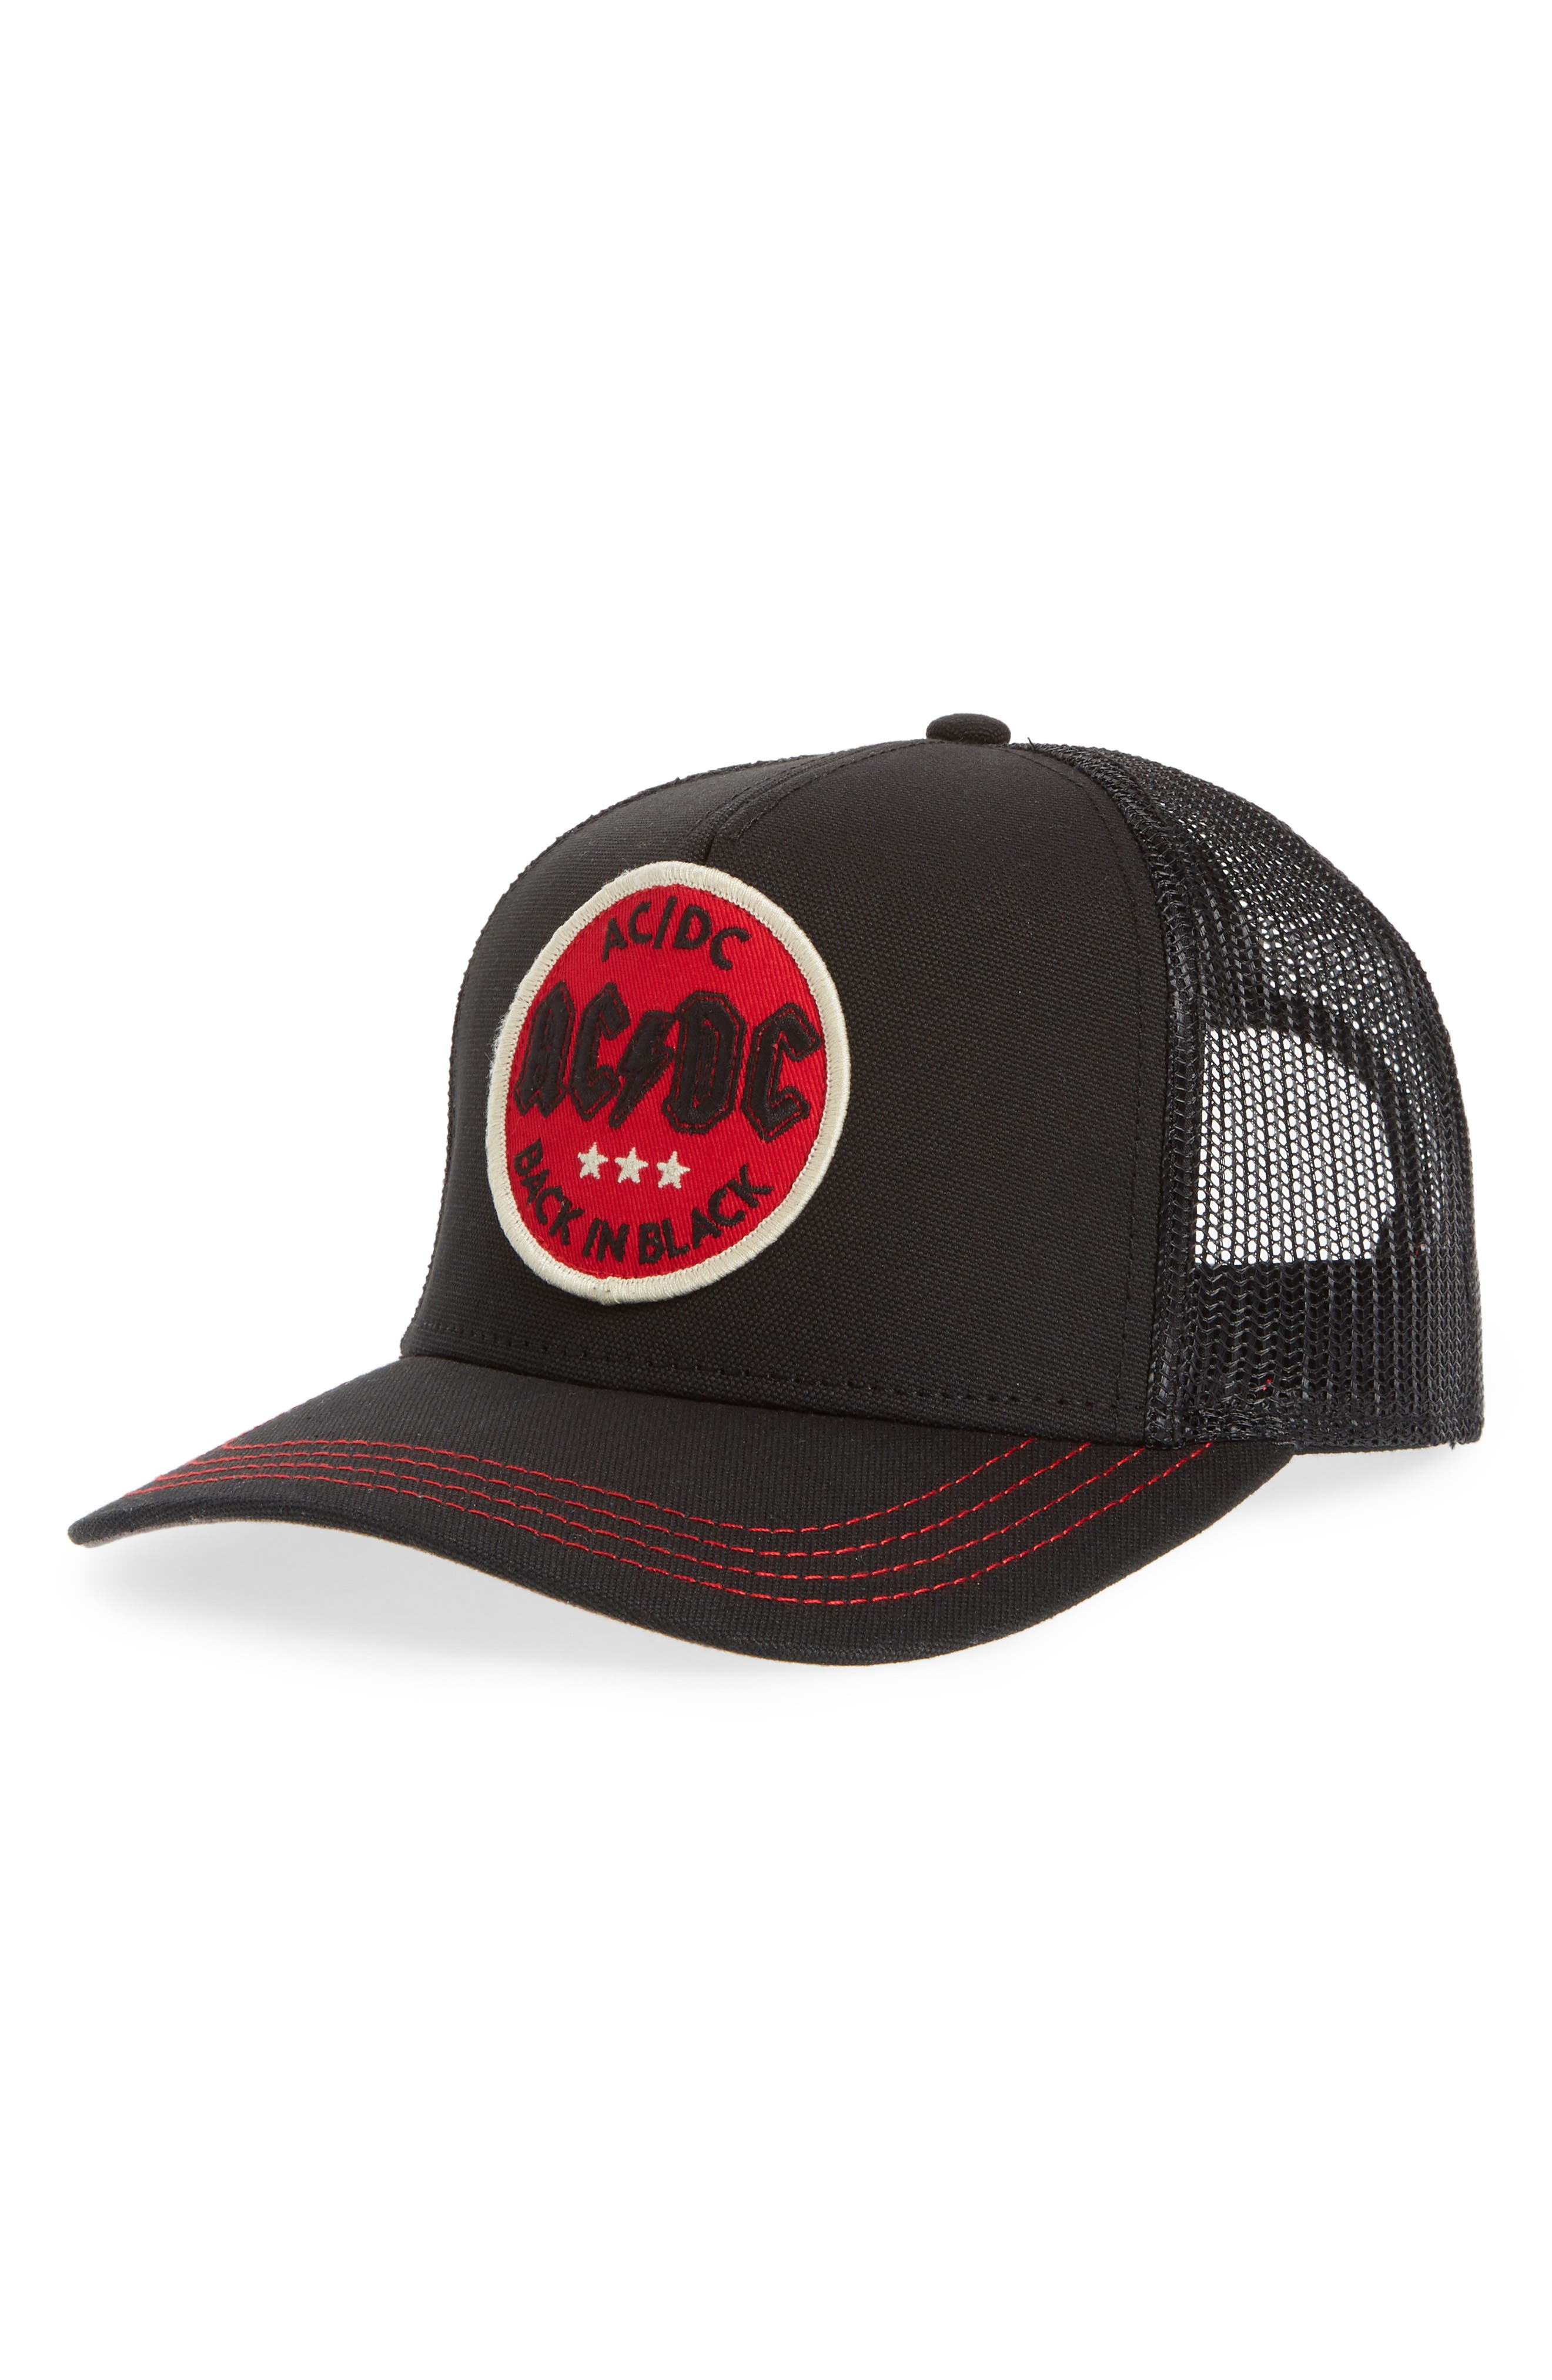 Valin AC/DC Back in Black Trucker Hat,                             Main thumbnail 1, color,                             Black